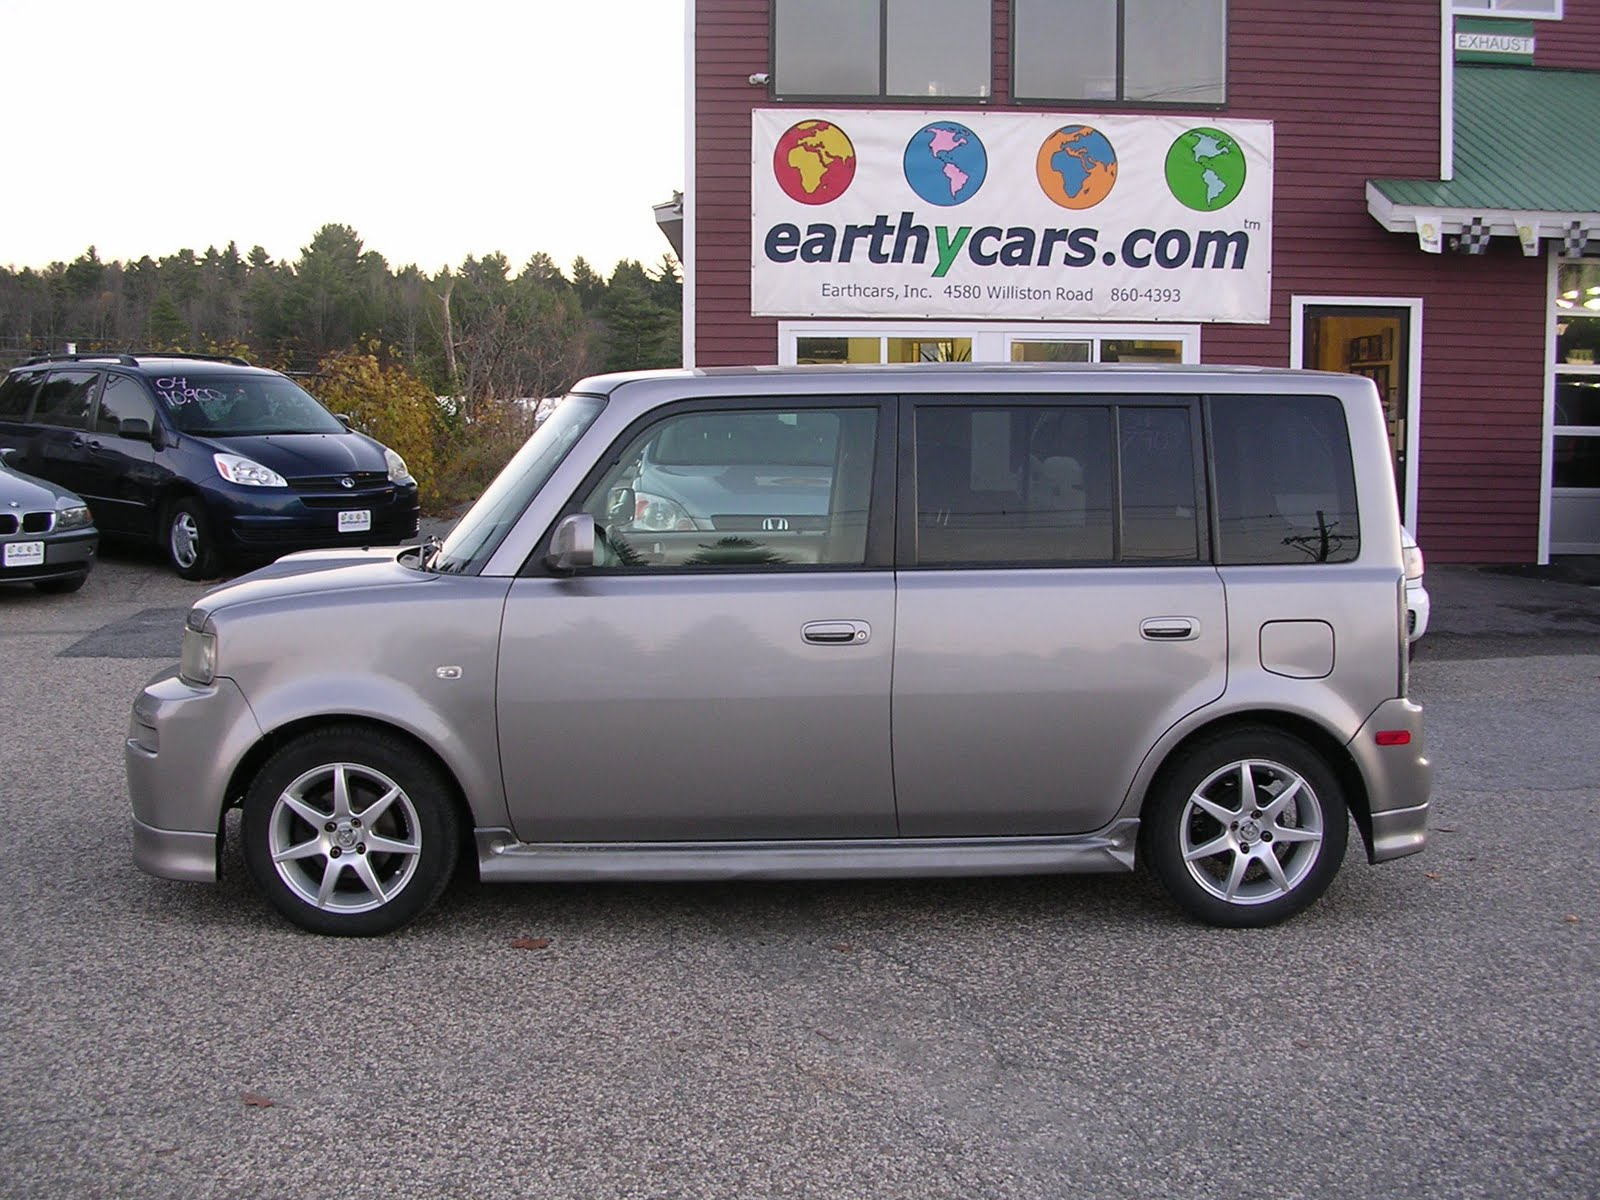 EARTHY CAR OF THE WEEK: 2005 Scion XB